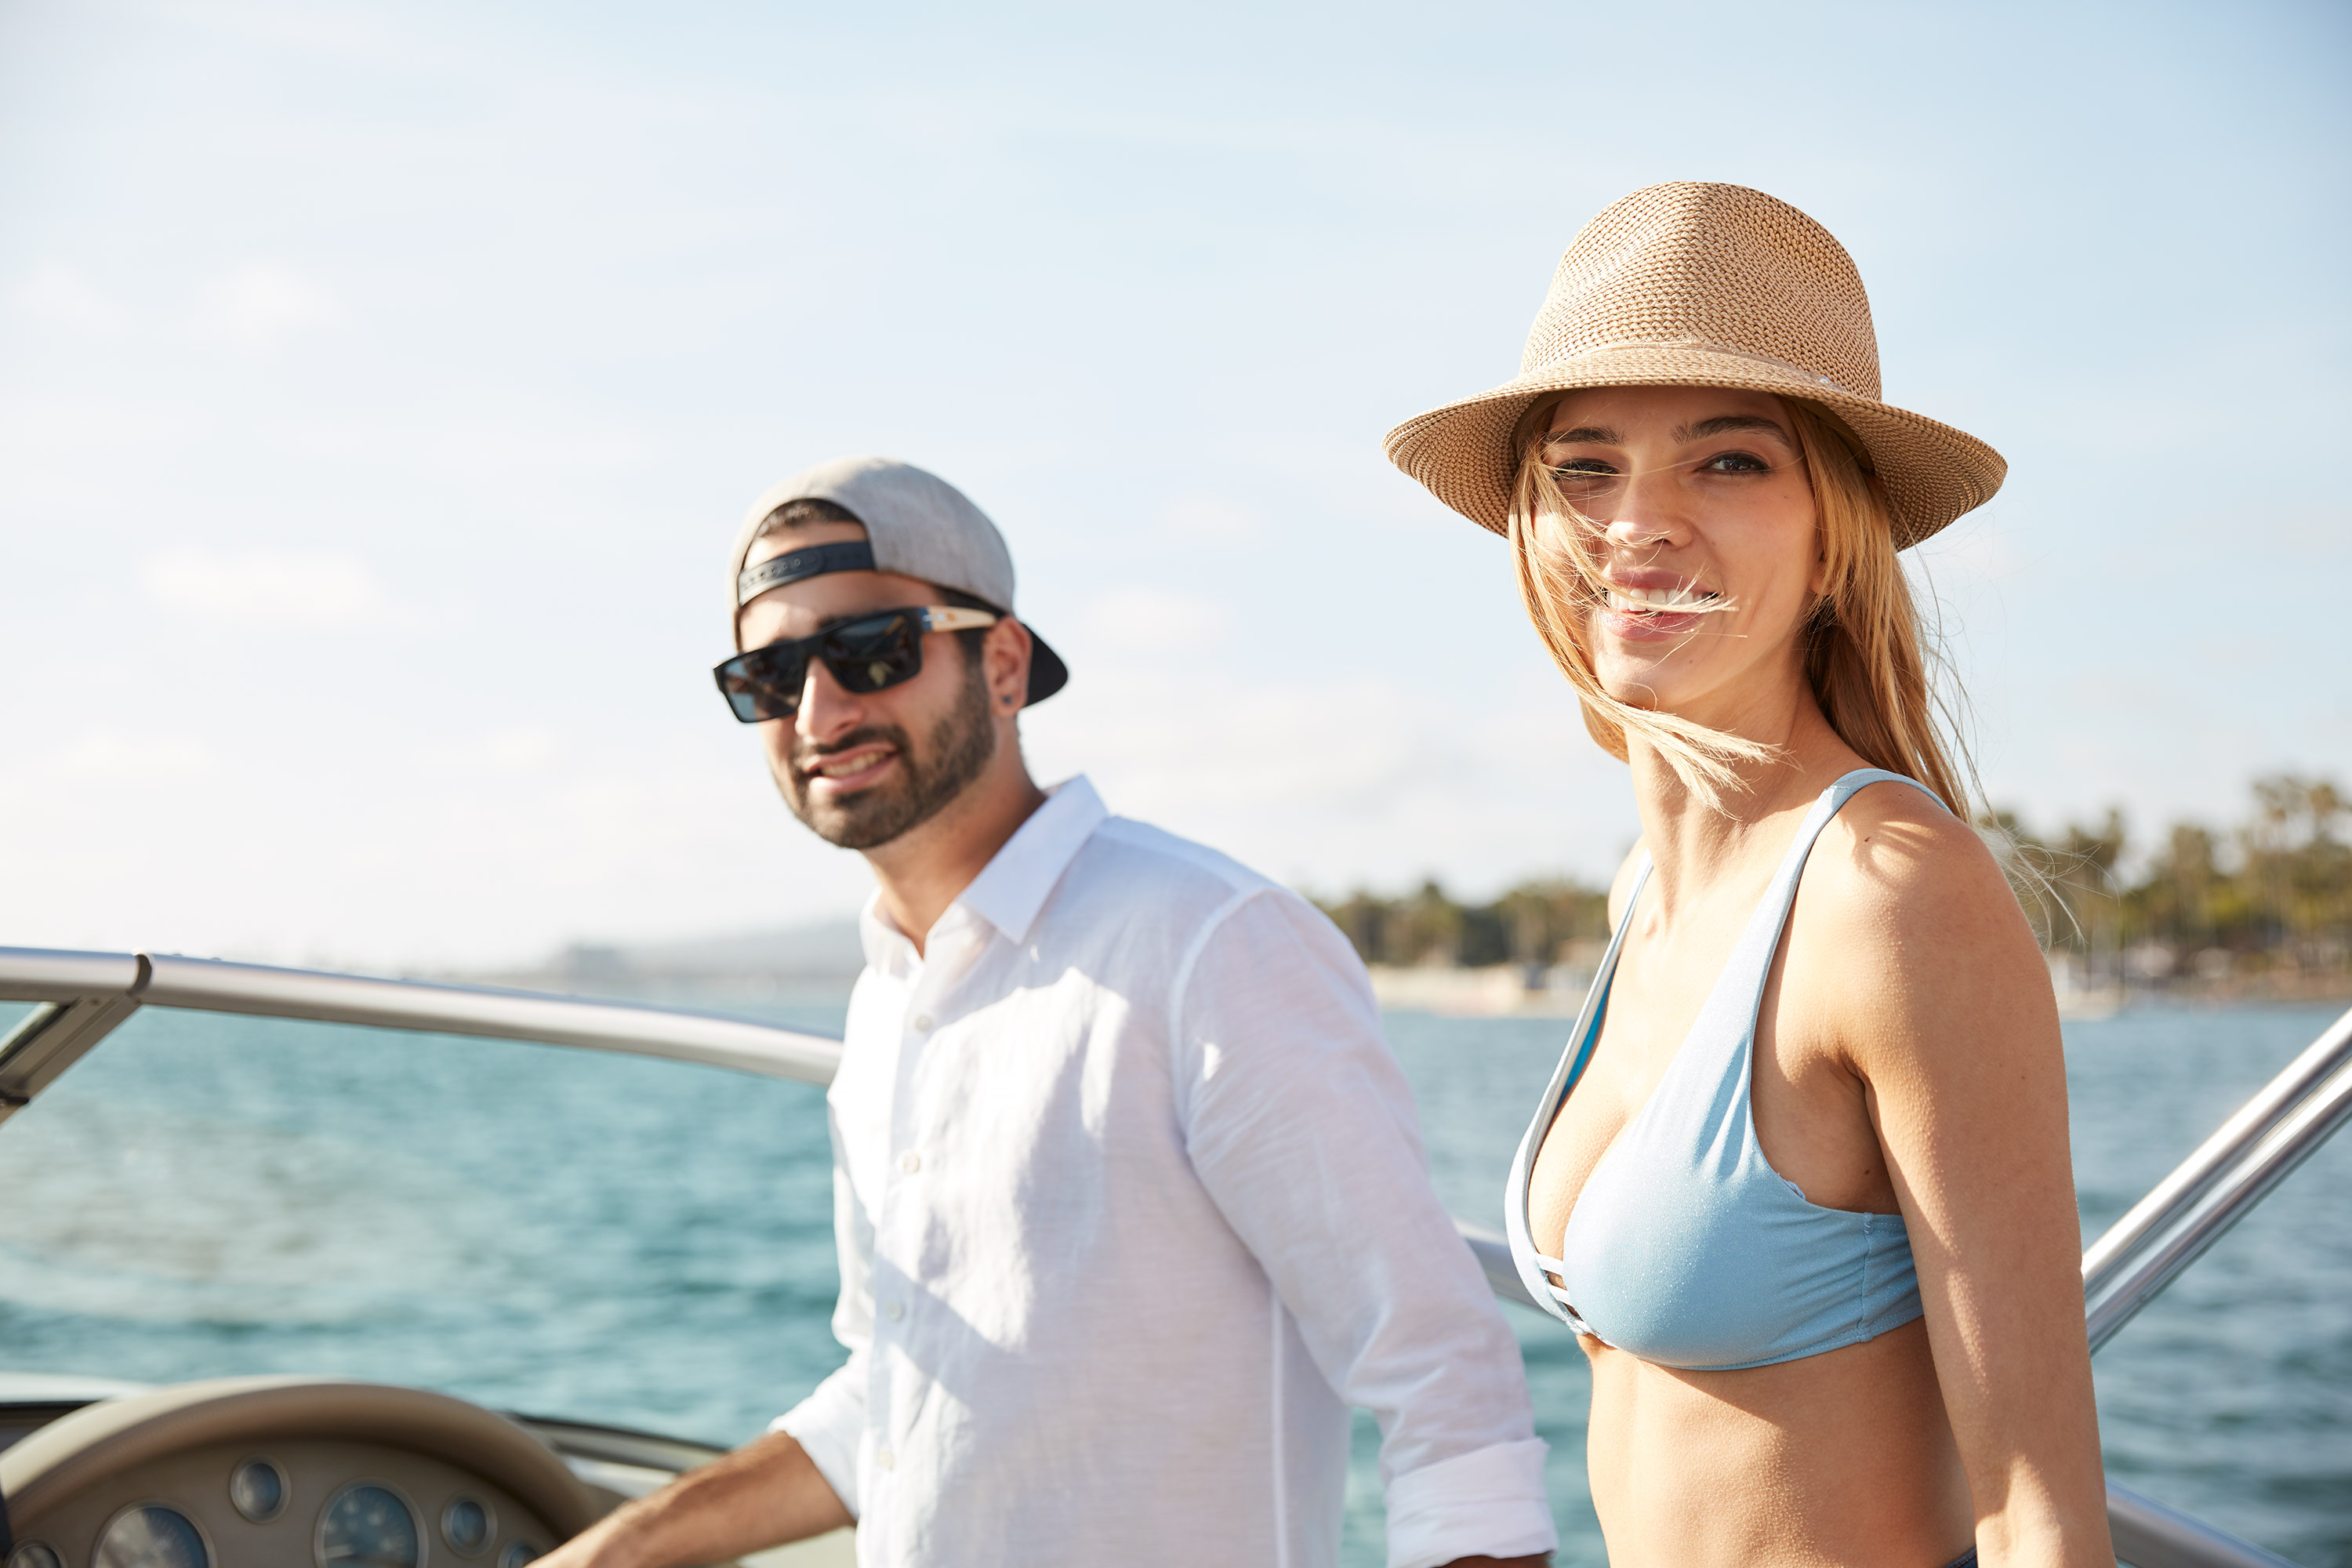 Lifestyle-031-fashionable-boating-couple-summer